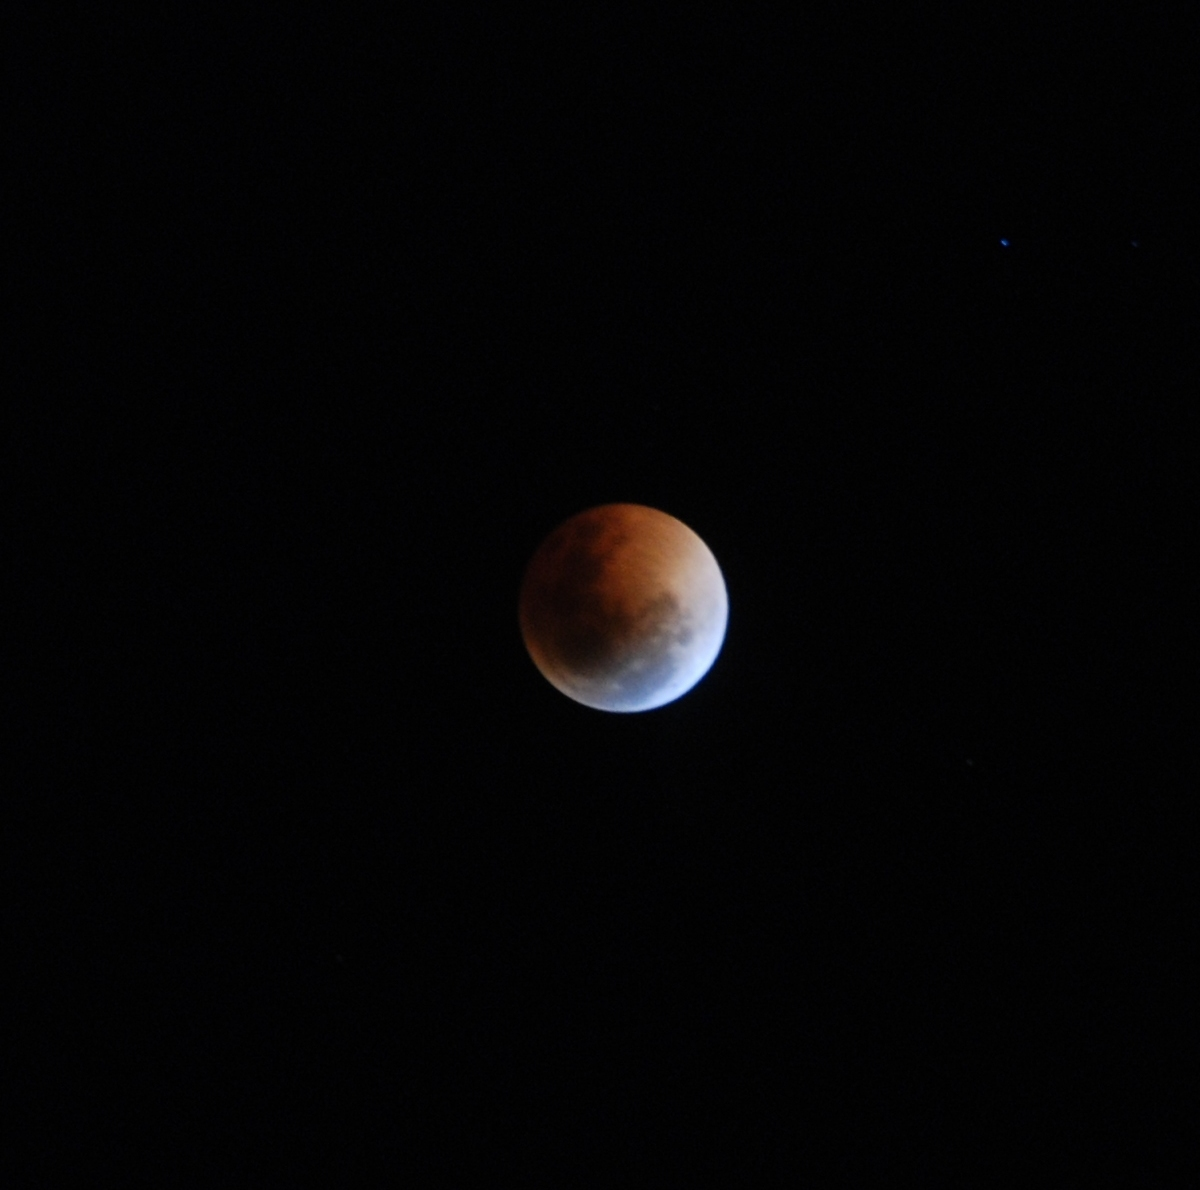 lunar eclipse melbourne - photo #26